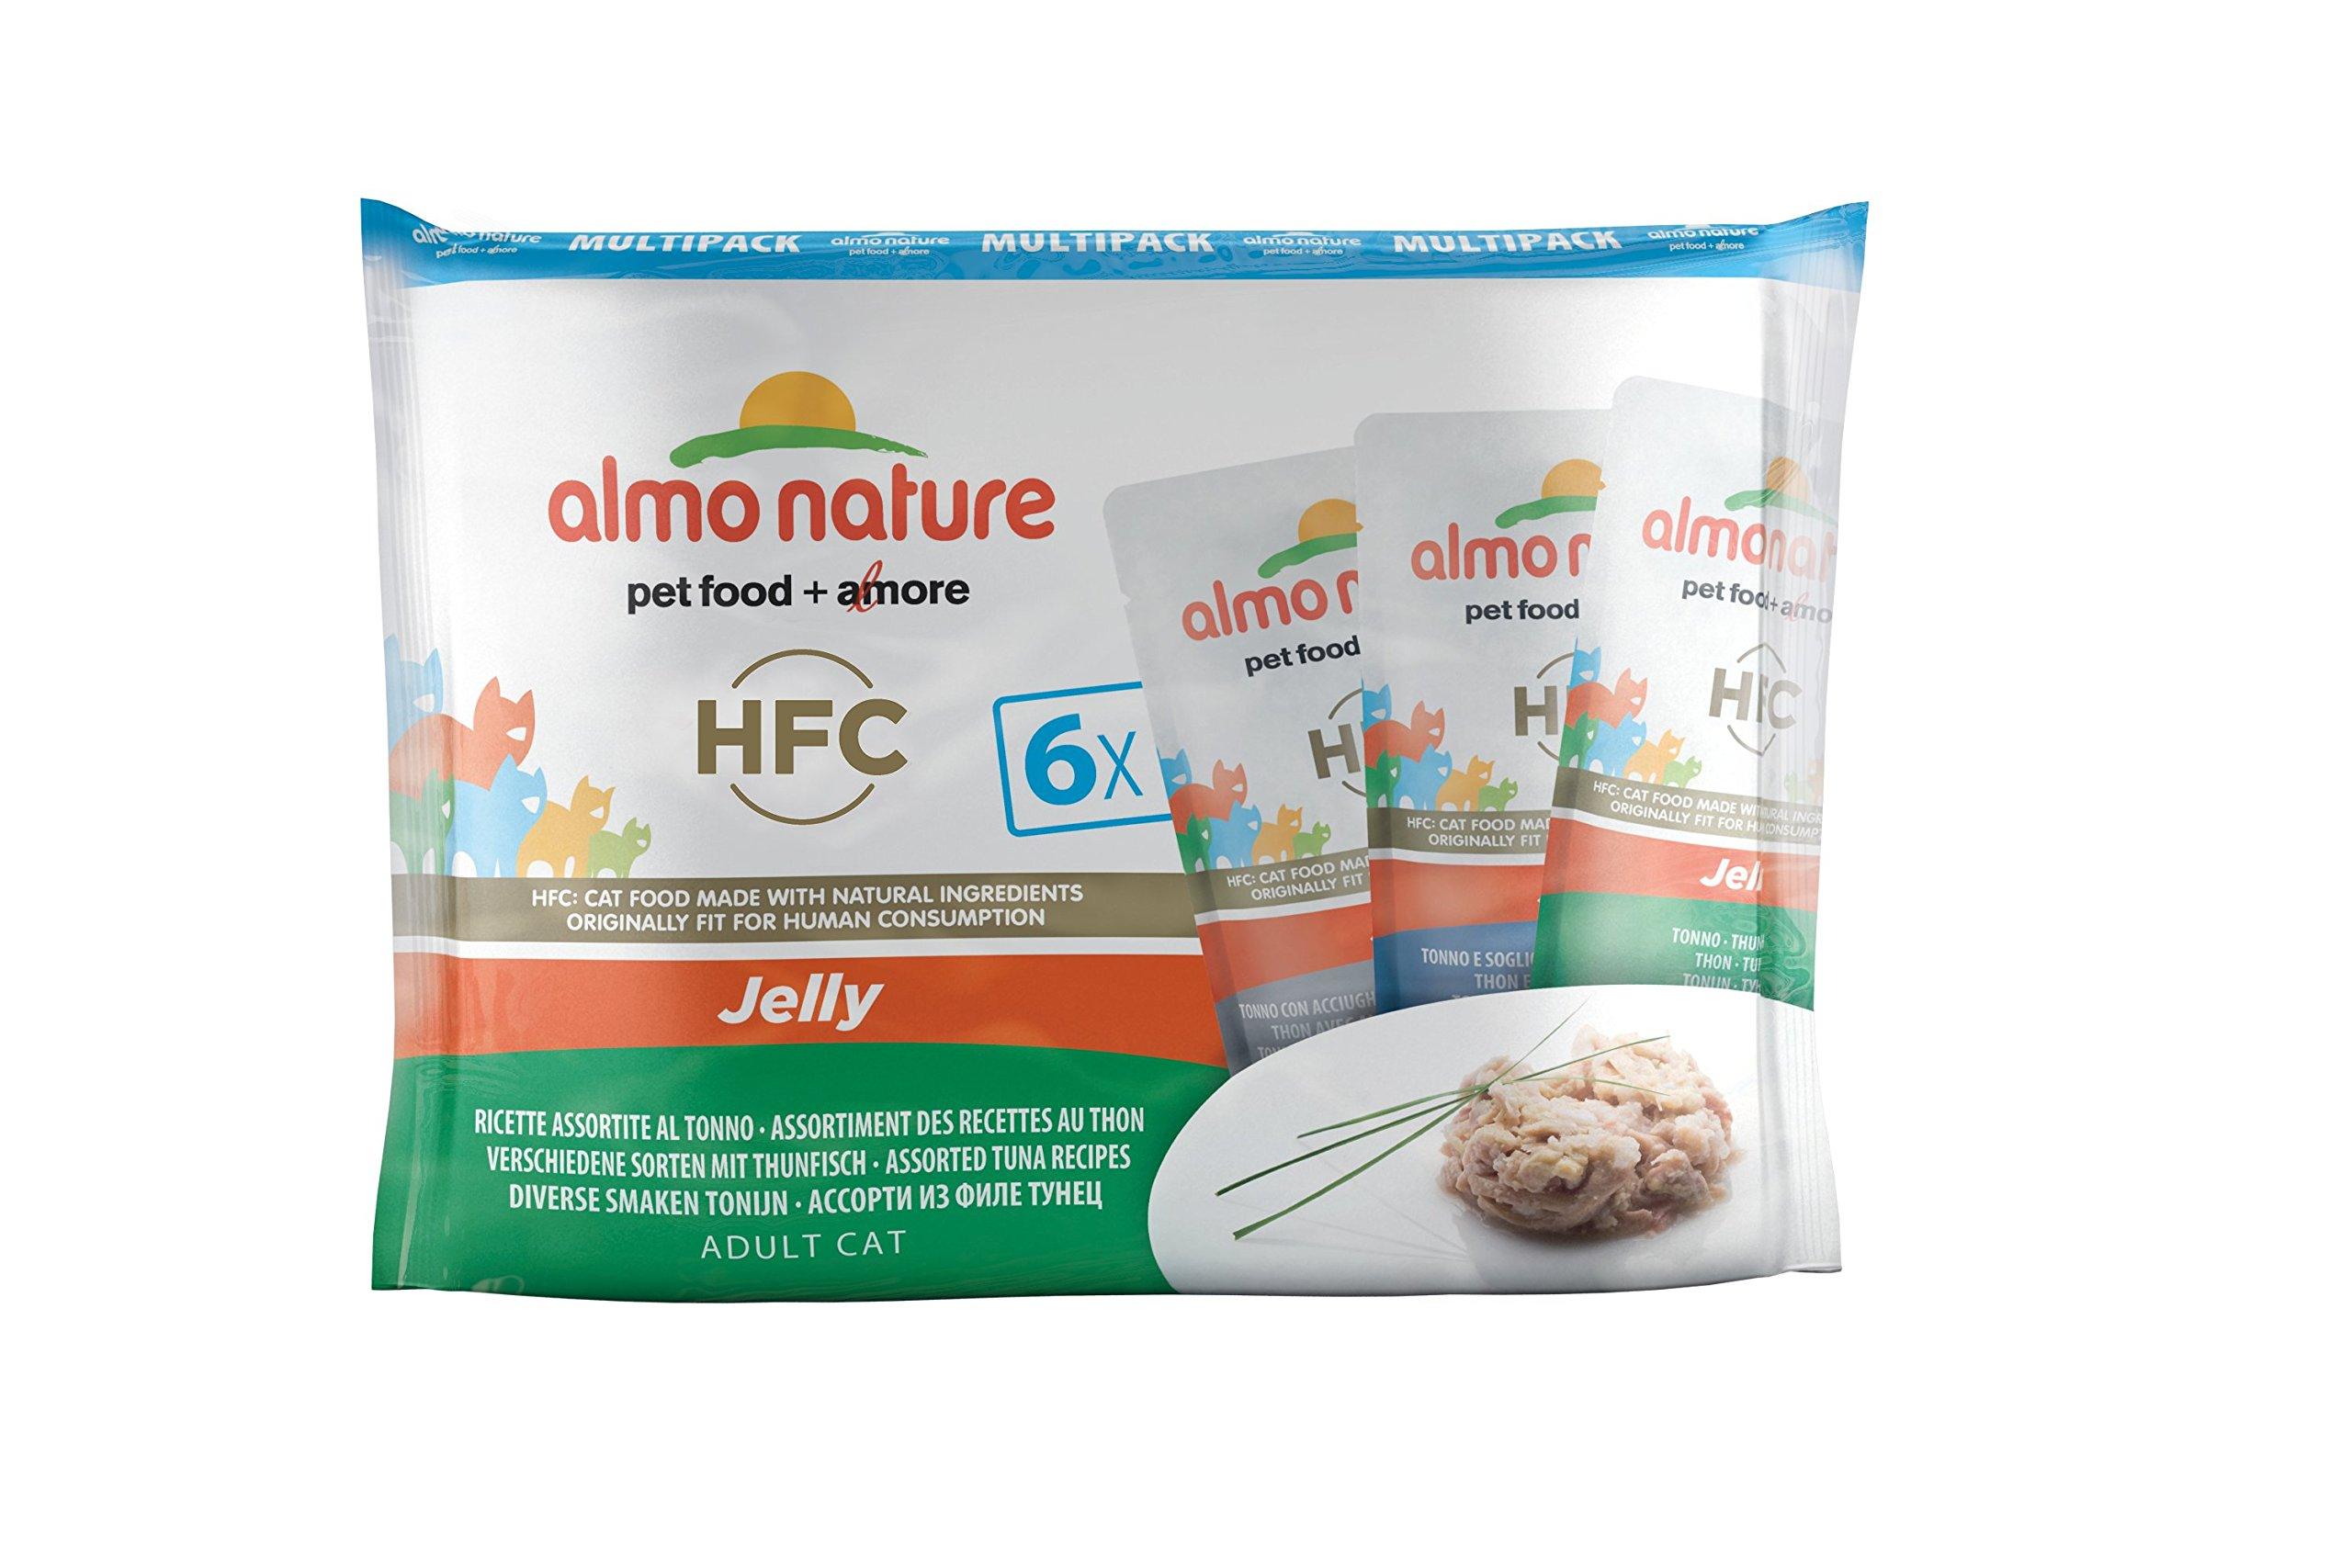 Almo Nature Cat Food Classic Pouch Multipack Mixed Tuna Selection, 8 x (6 x 55g)